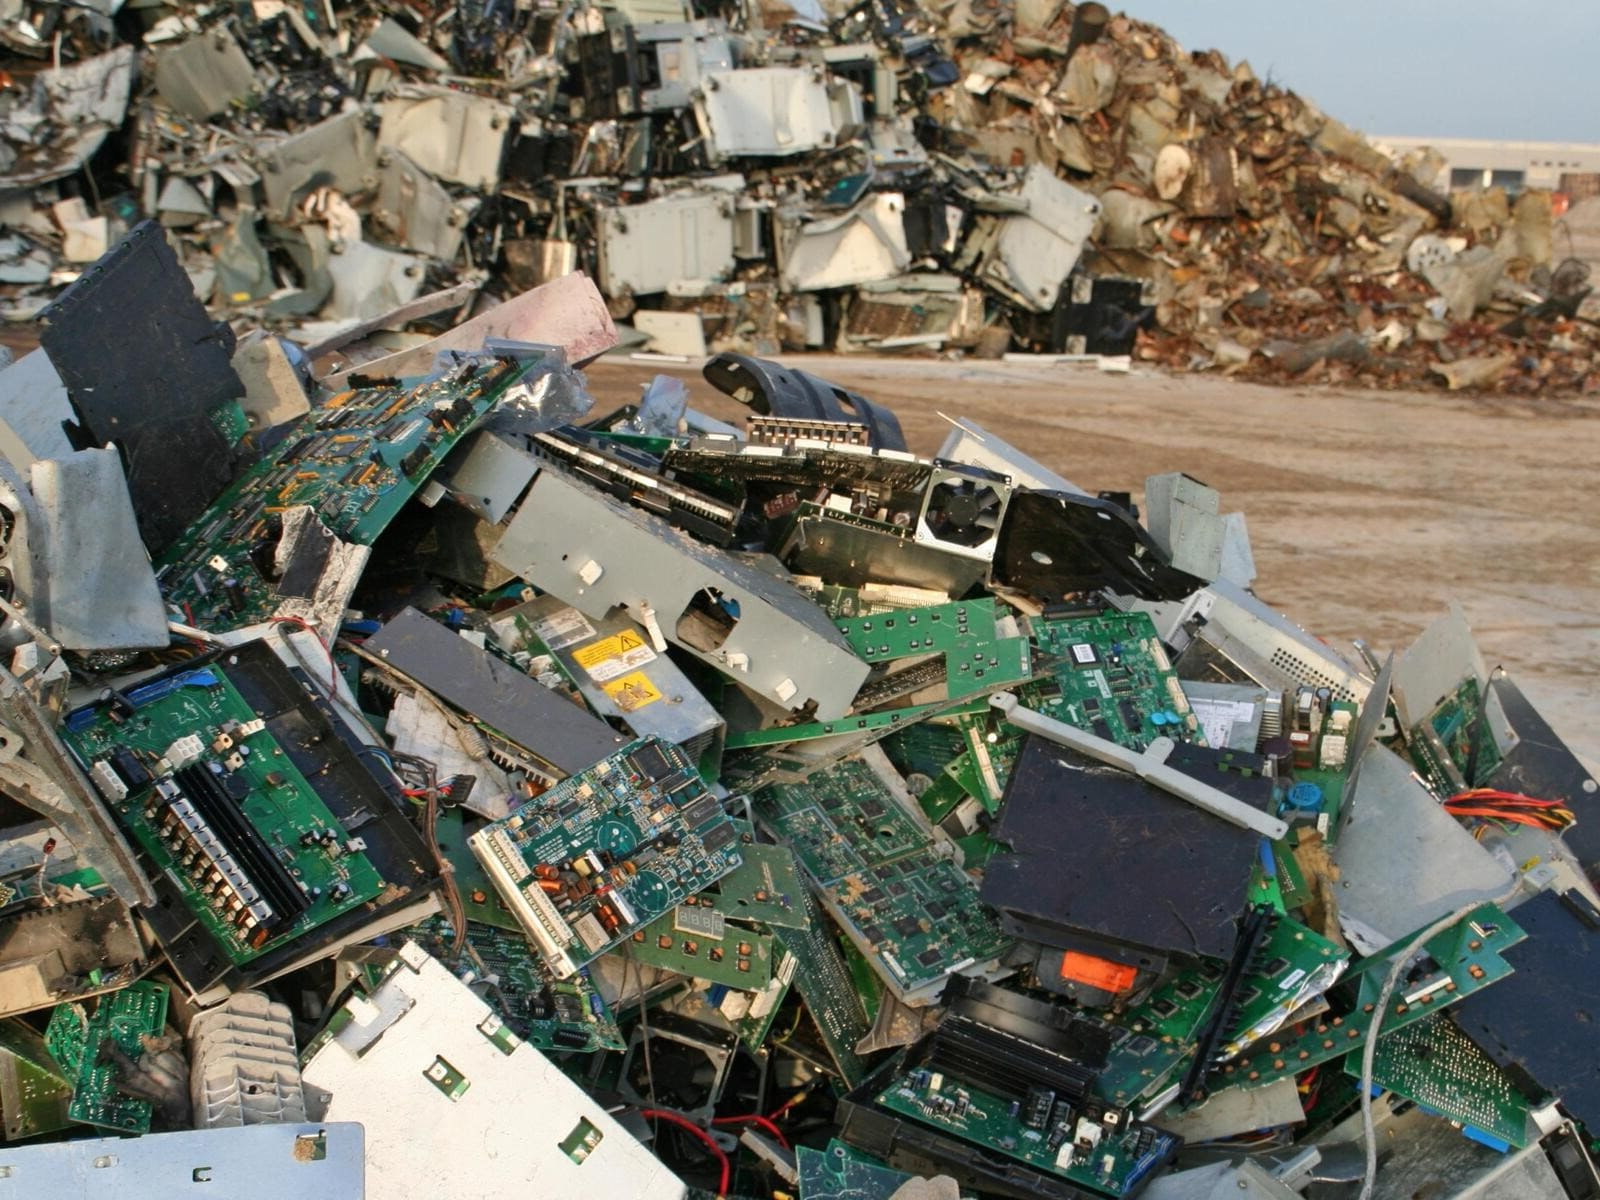 What Are The Requirements For Electronic Recycling And Compliance?